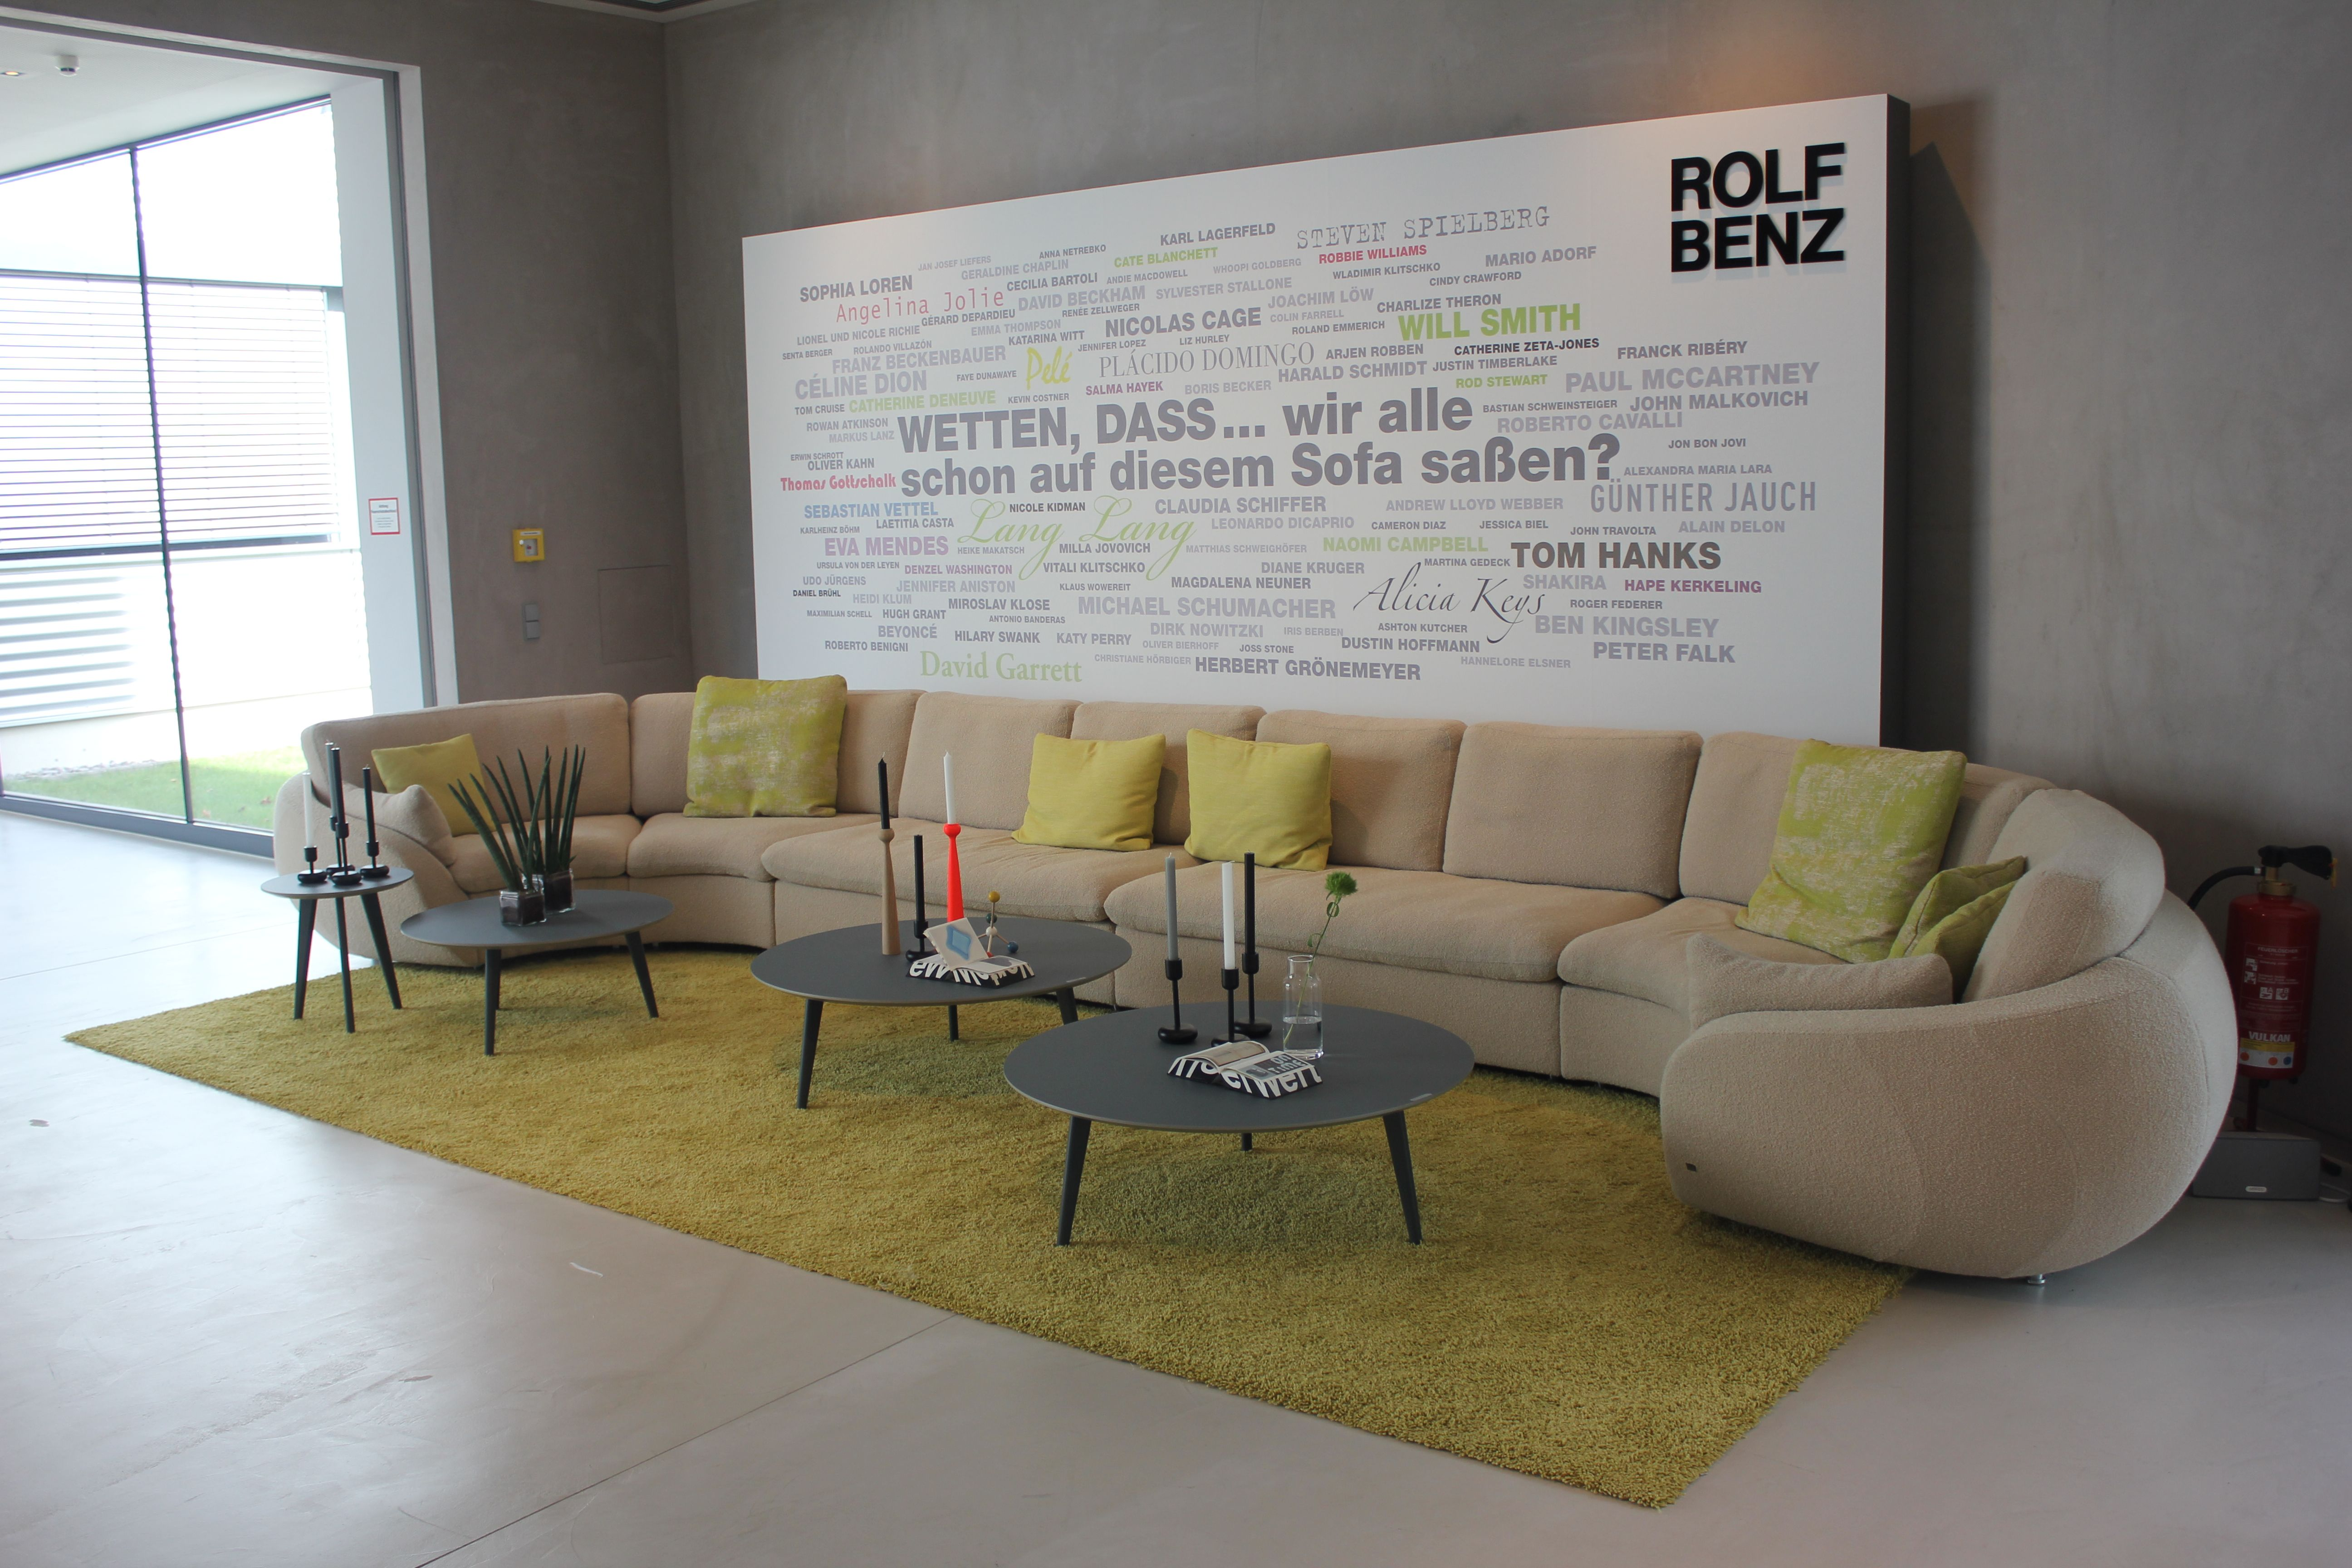 Affordable Sofa Bei Hausmesse Rolf Benz With Sofa Benz